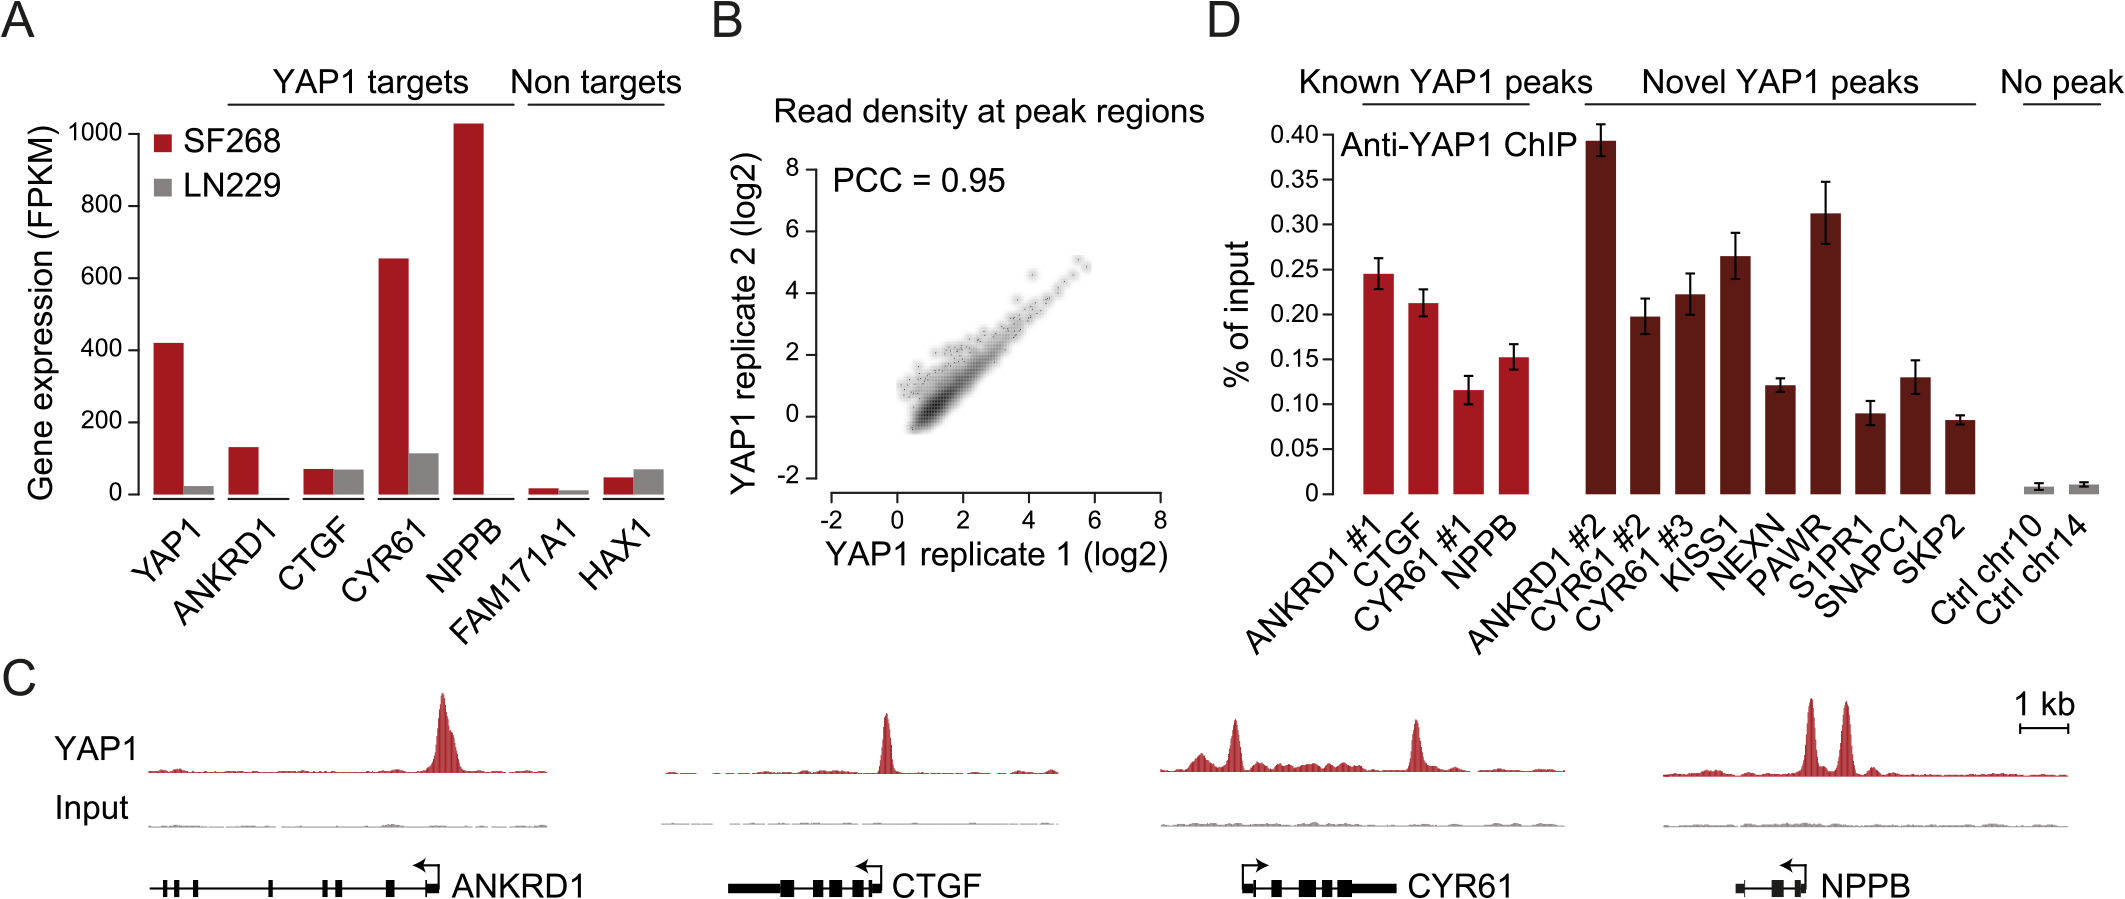 Genome-wide binding of YAP1 to chromatin in SF268 cells.